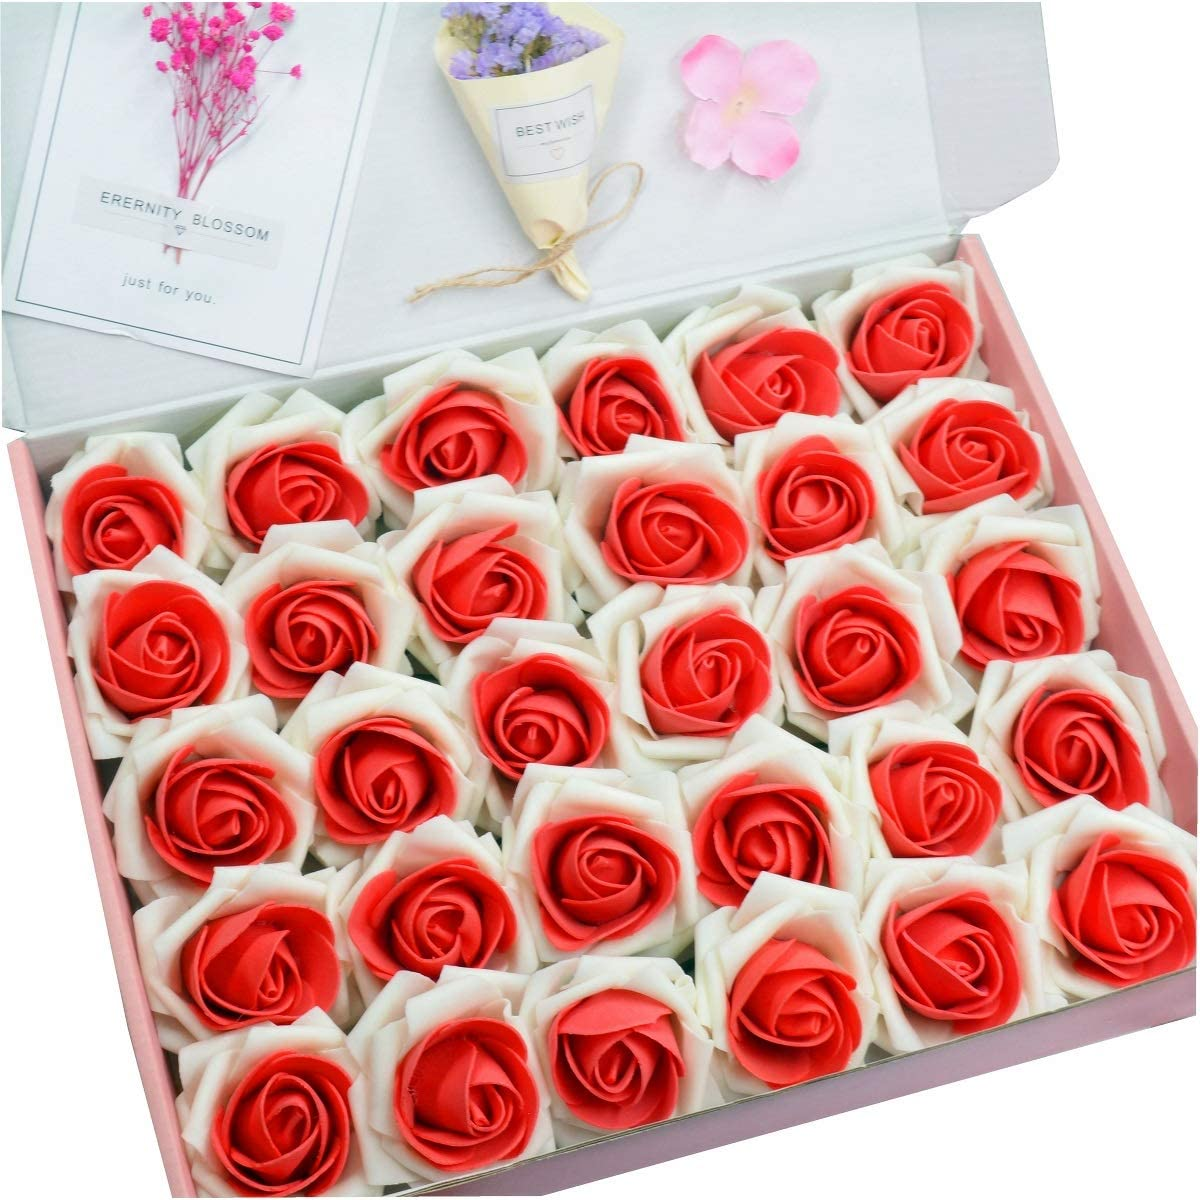 Anndason 50 PCS Artificial Roses Flowers Artificial Foam Roses Fake Roses for Home Decorations Wedding Bouquets Party (Red)